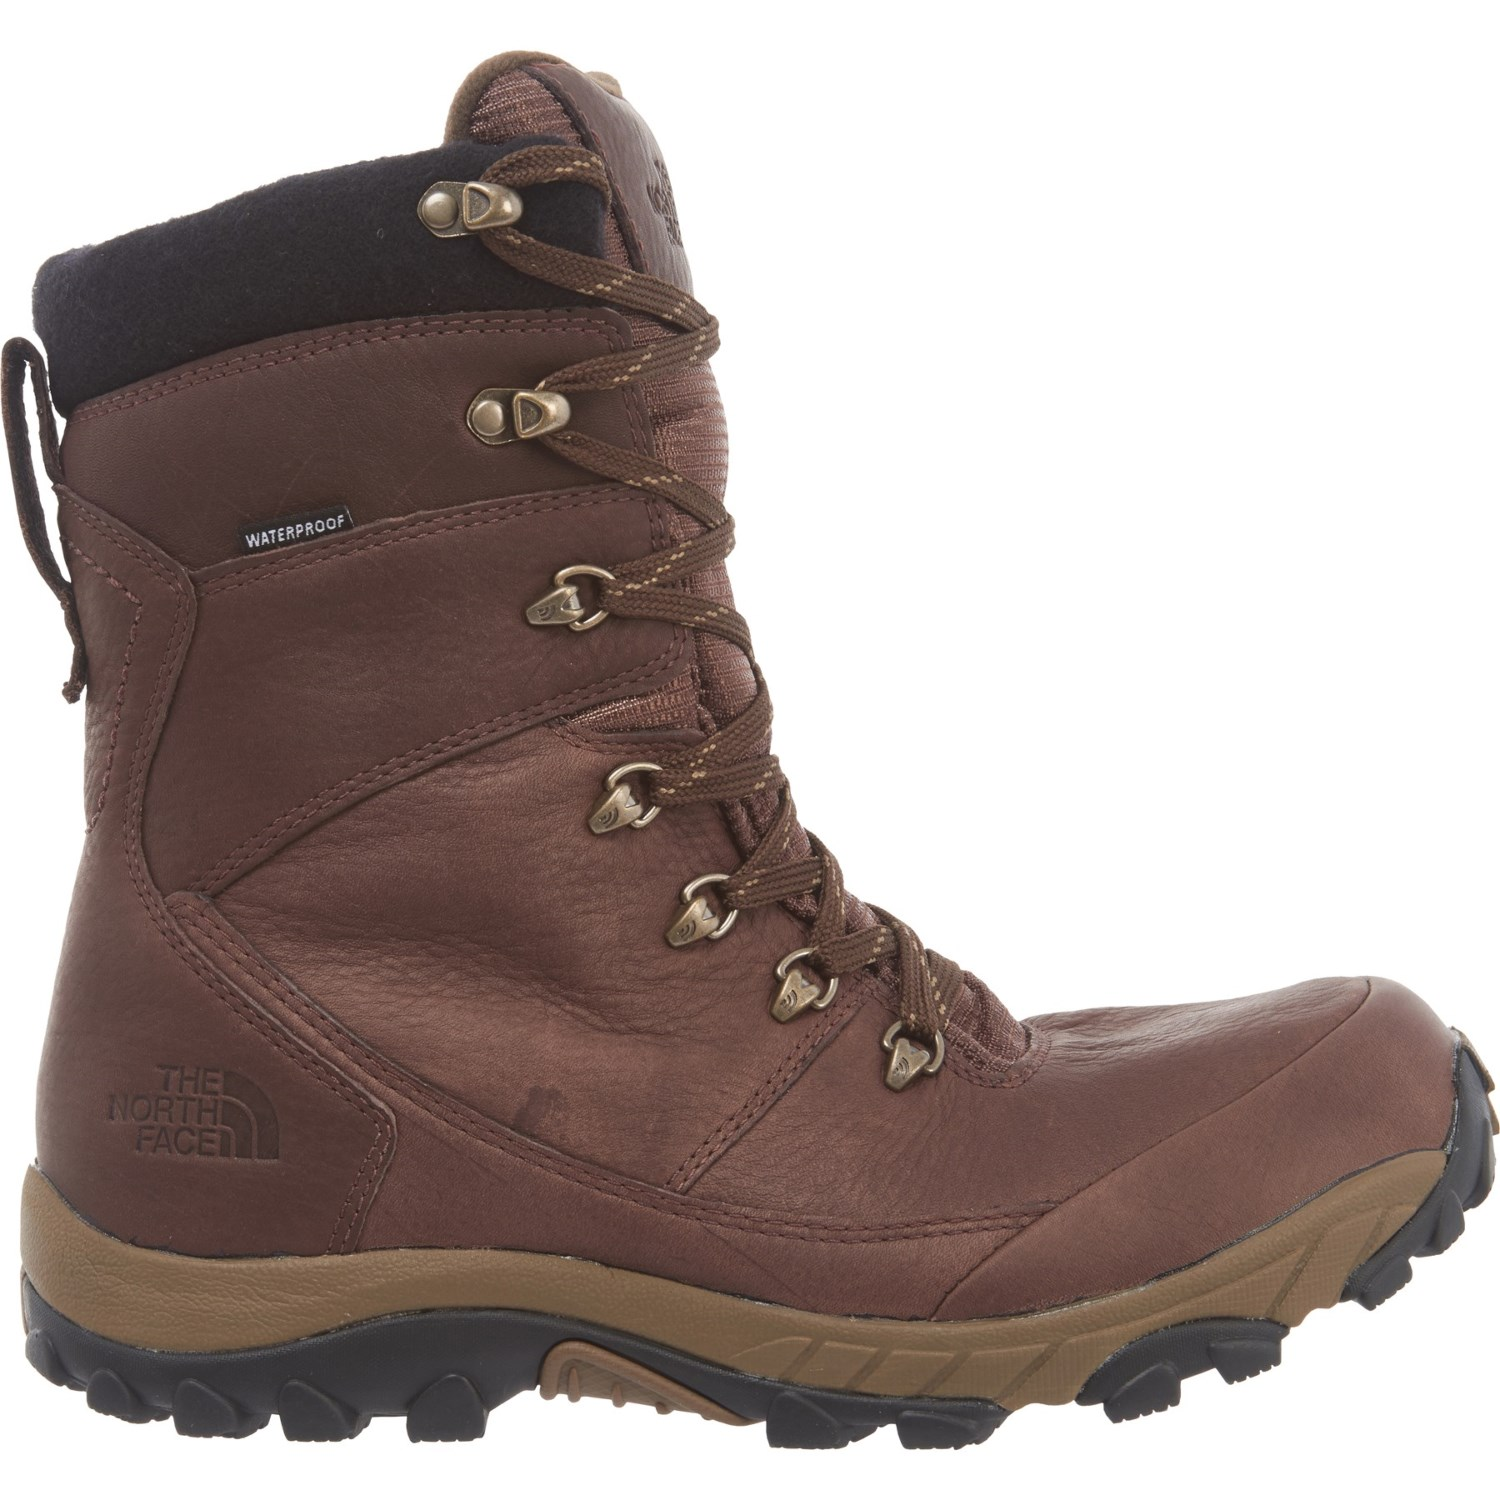 37afe1d165d The North Face Chilkat Leather Tall Boots - Waterproof, Insulated (For Men)